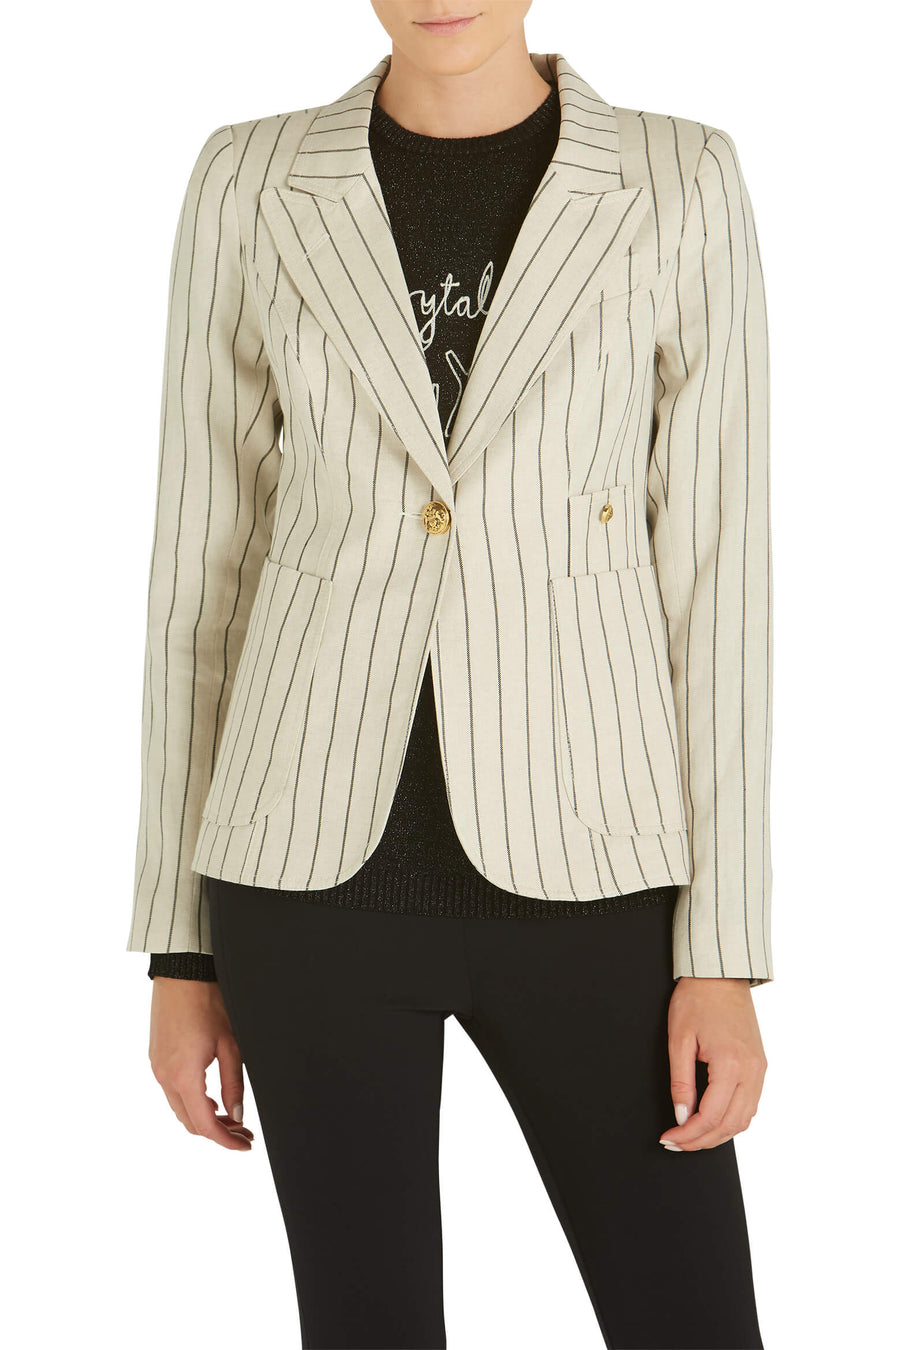 Smythe Patch Pocket Duchess Blazer from The New Trend